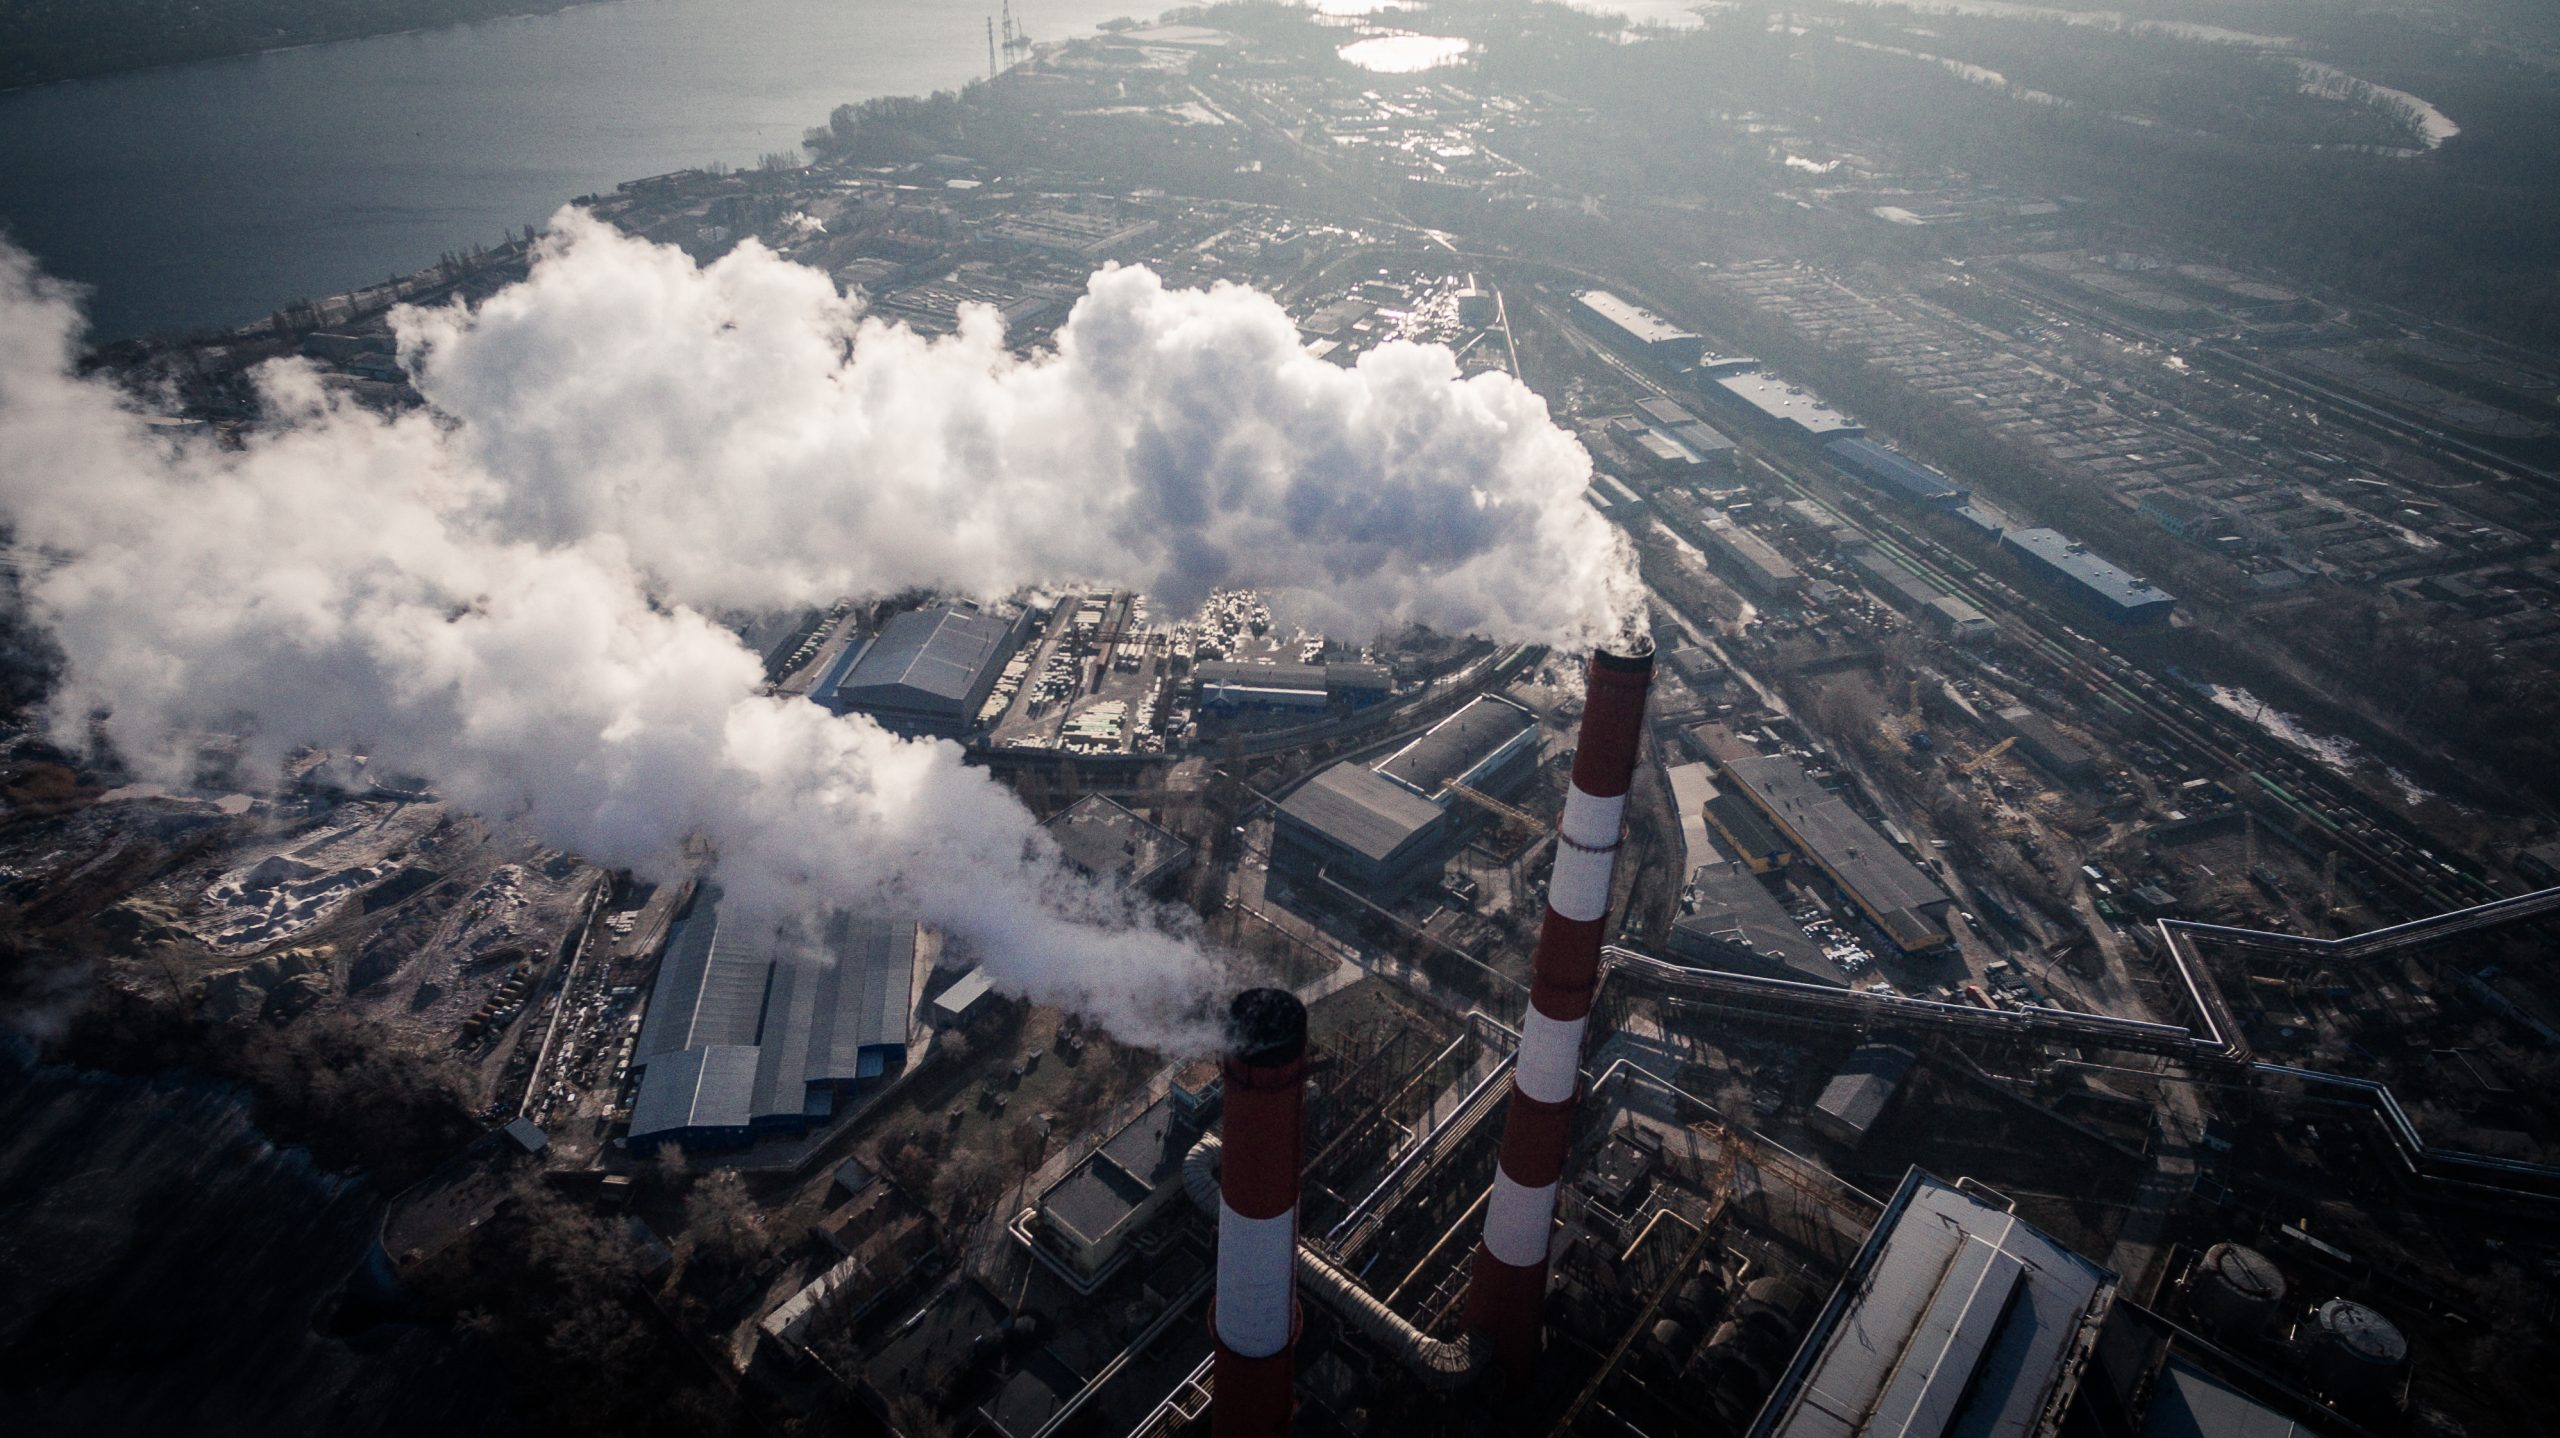 aerial view of smokestacks spewing smoke into the air